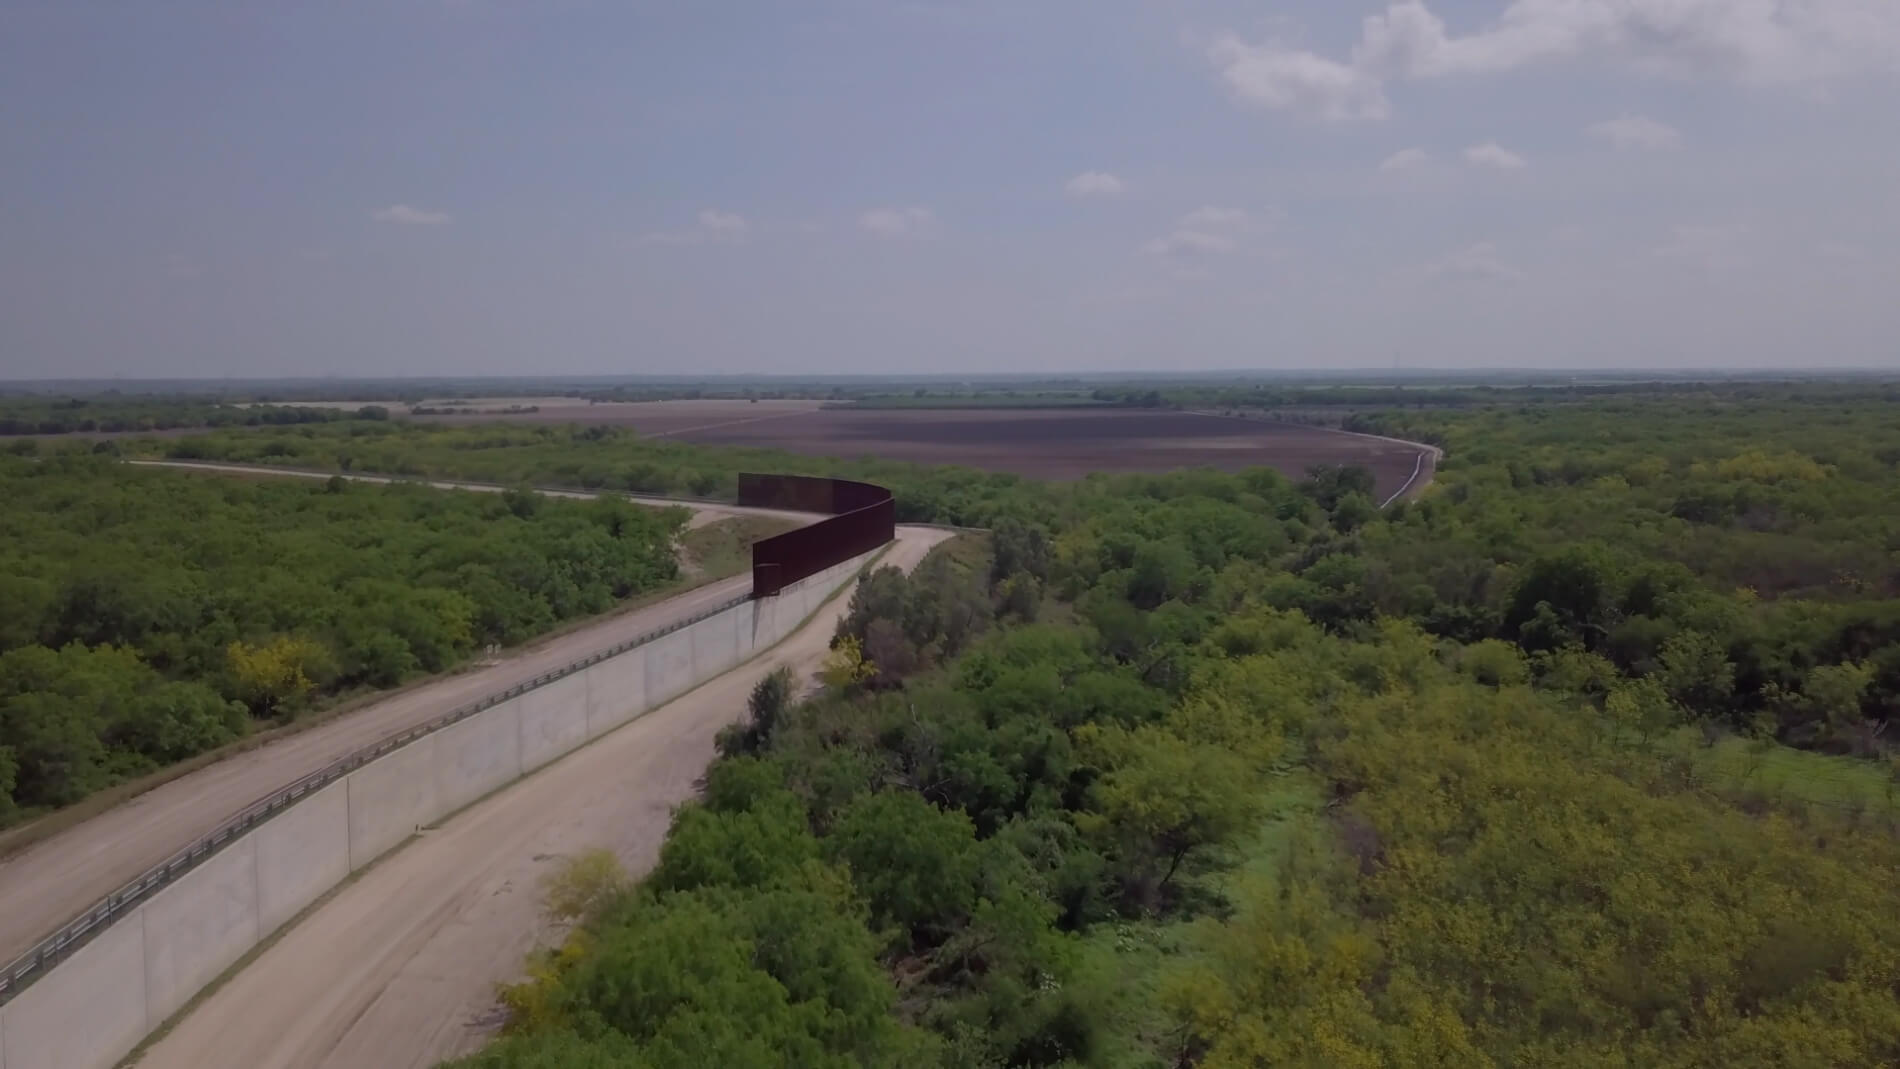 Section of Border wall in Rio Grande Valley.